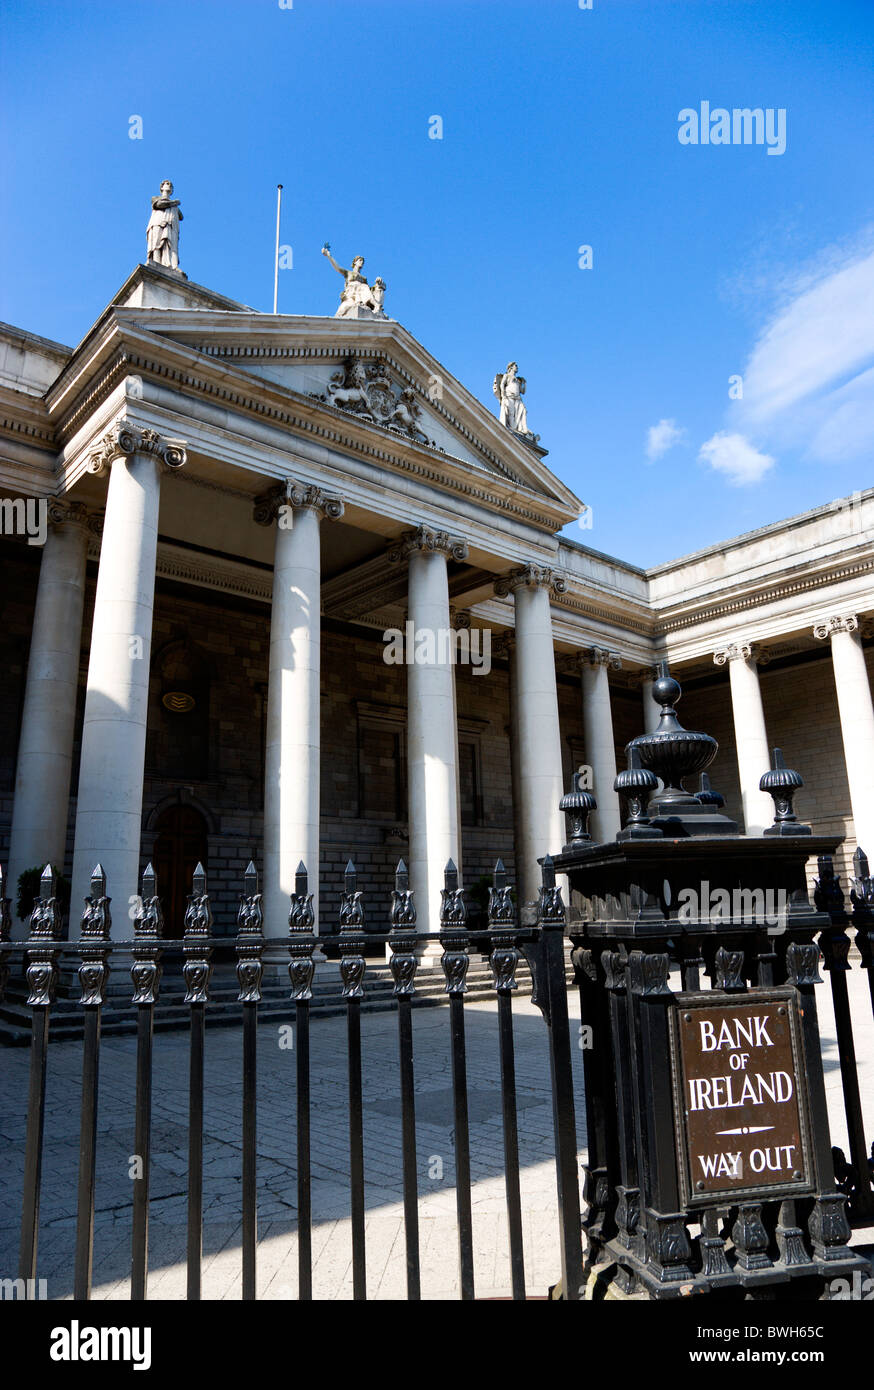 Ireland County Dublin Dublin City The 18th Century Bank Of Ireland building in College Green - Stock Image